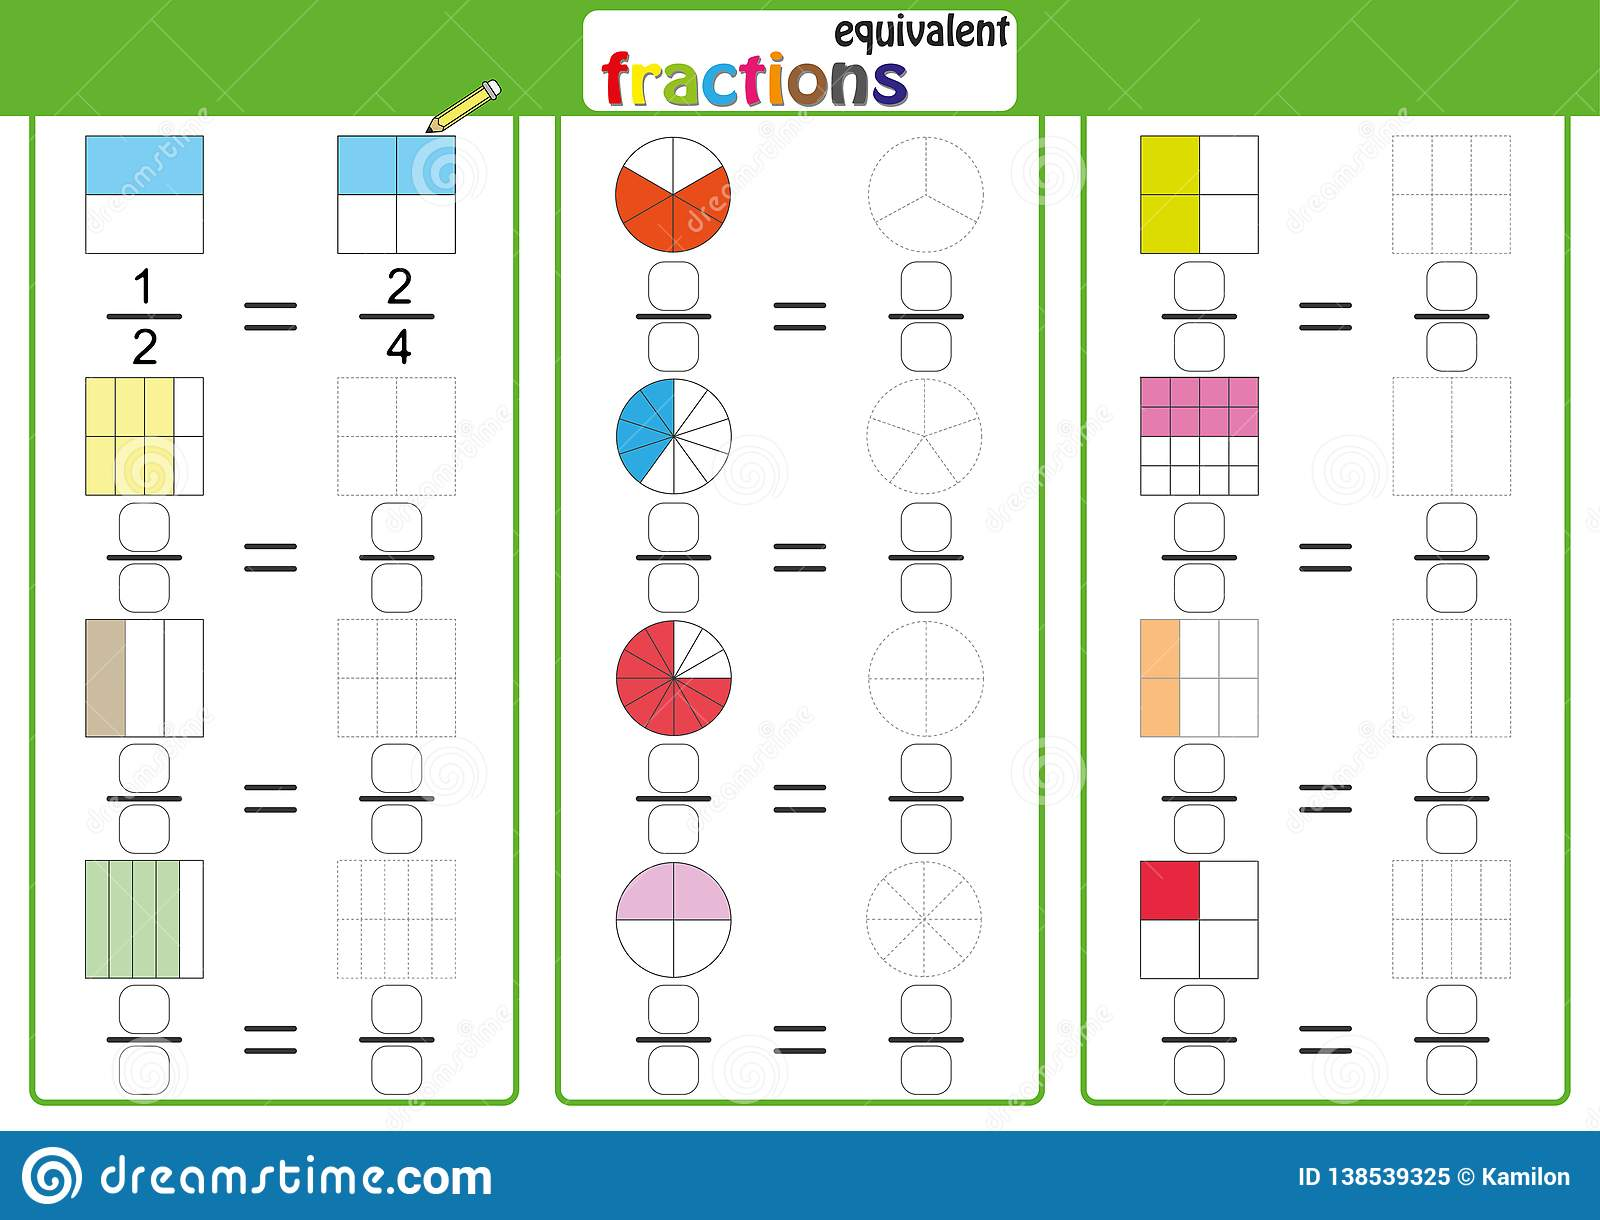 Equivalent Frantions Mathematics Math Worksheet Find